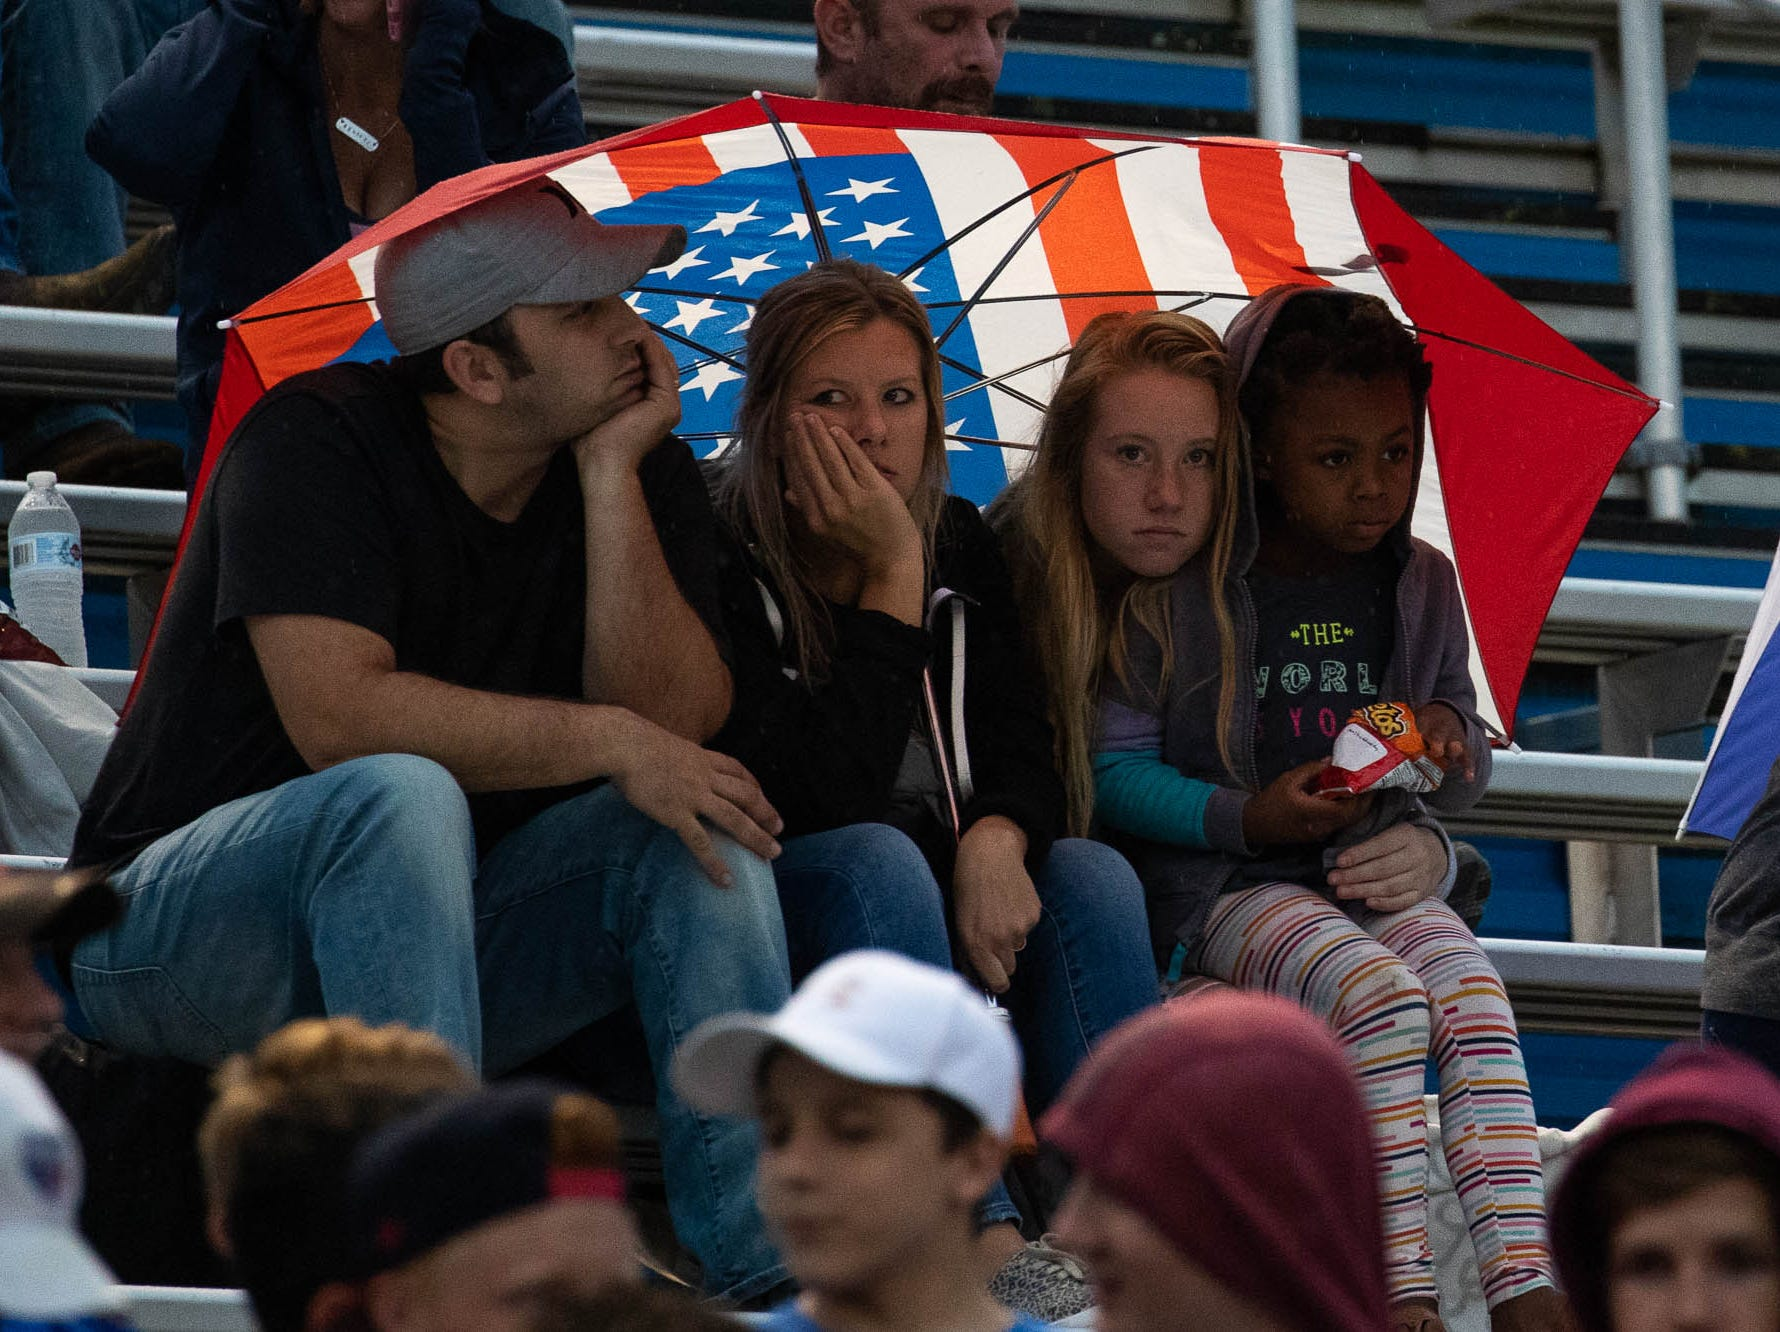 Spring Grove fans watch under an American flag umbrella during a football game between Muhlenberg and Spring Grove, Friday, Aug. 31, 2018, in Spring Grove.